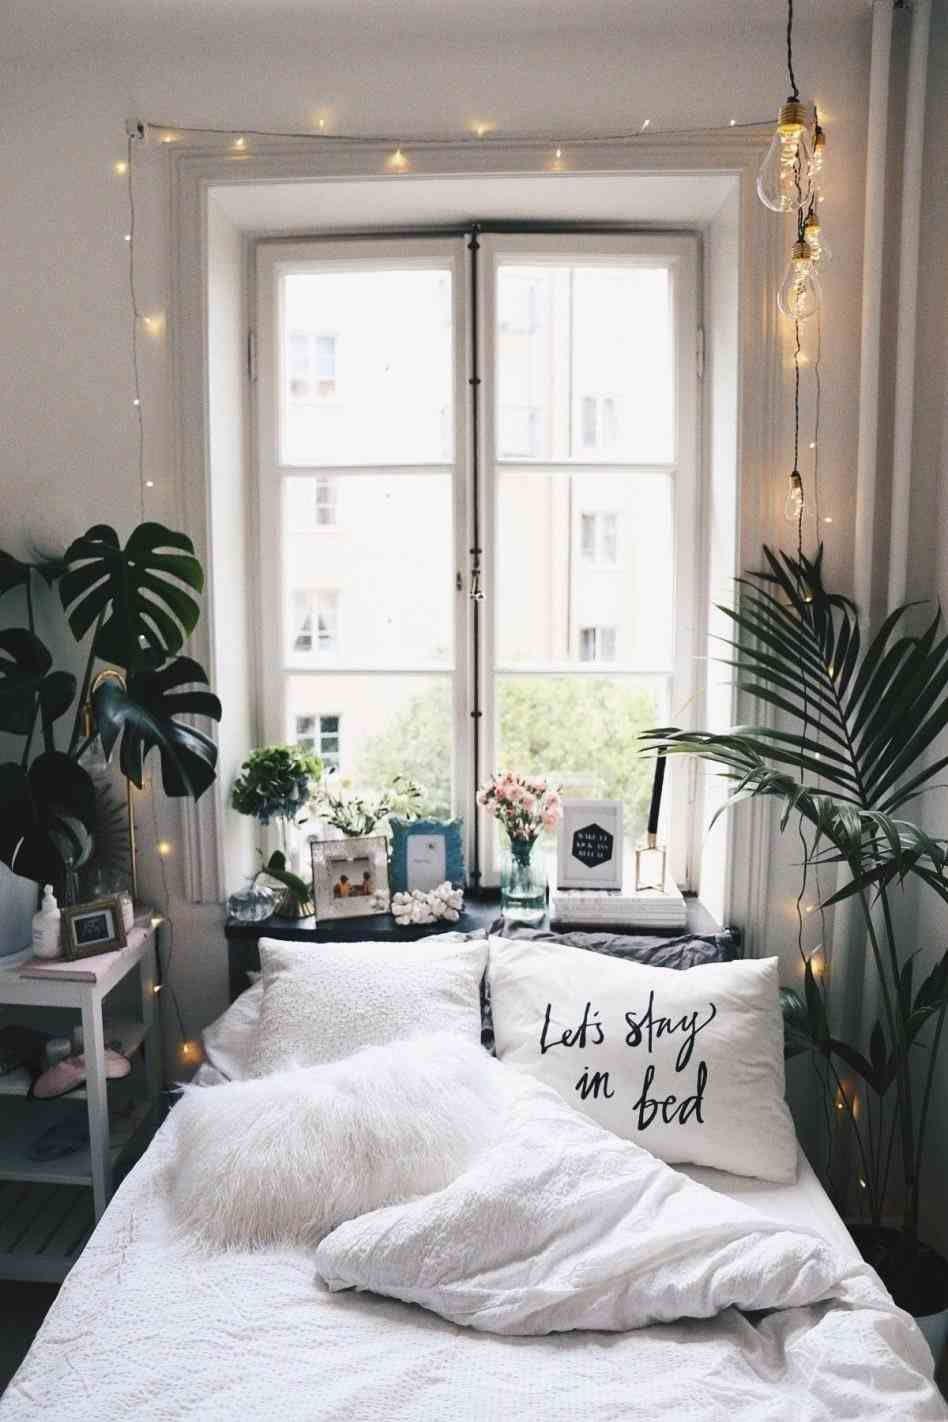 cozy room decor tumblr | Home Ideas | Pinterest | Cozy room, Room ...